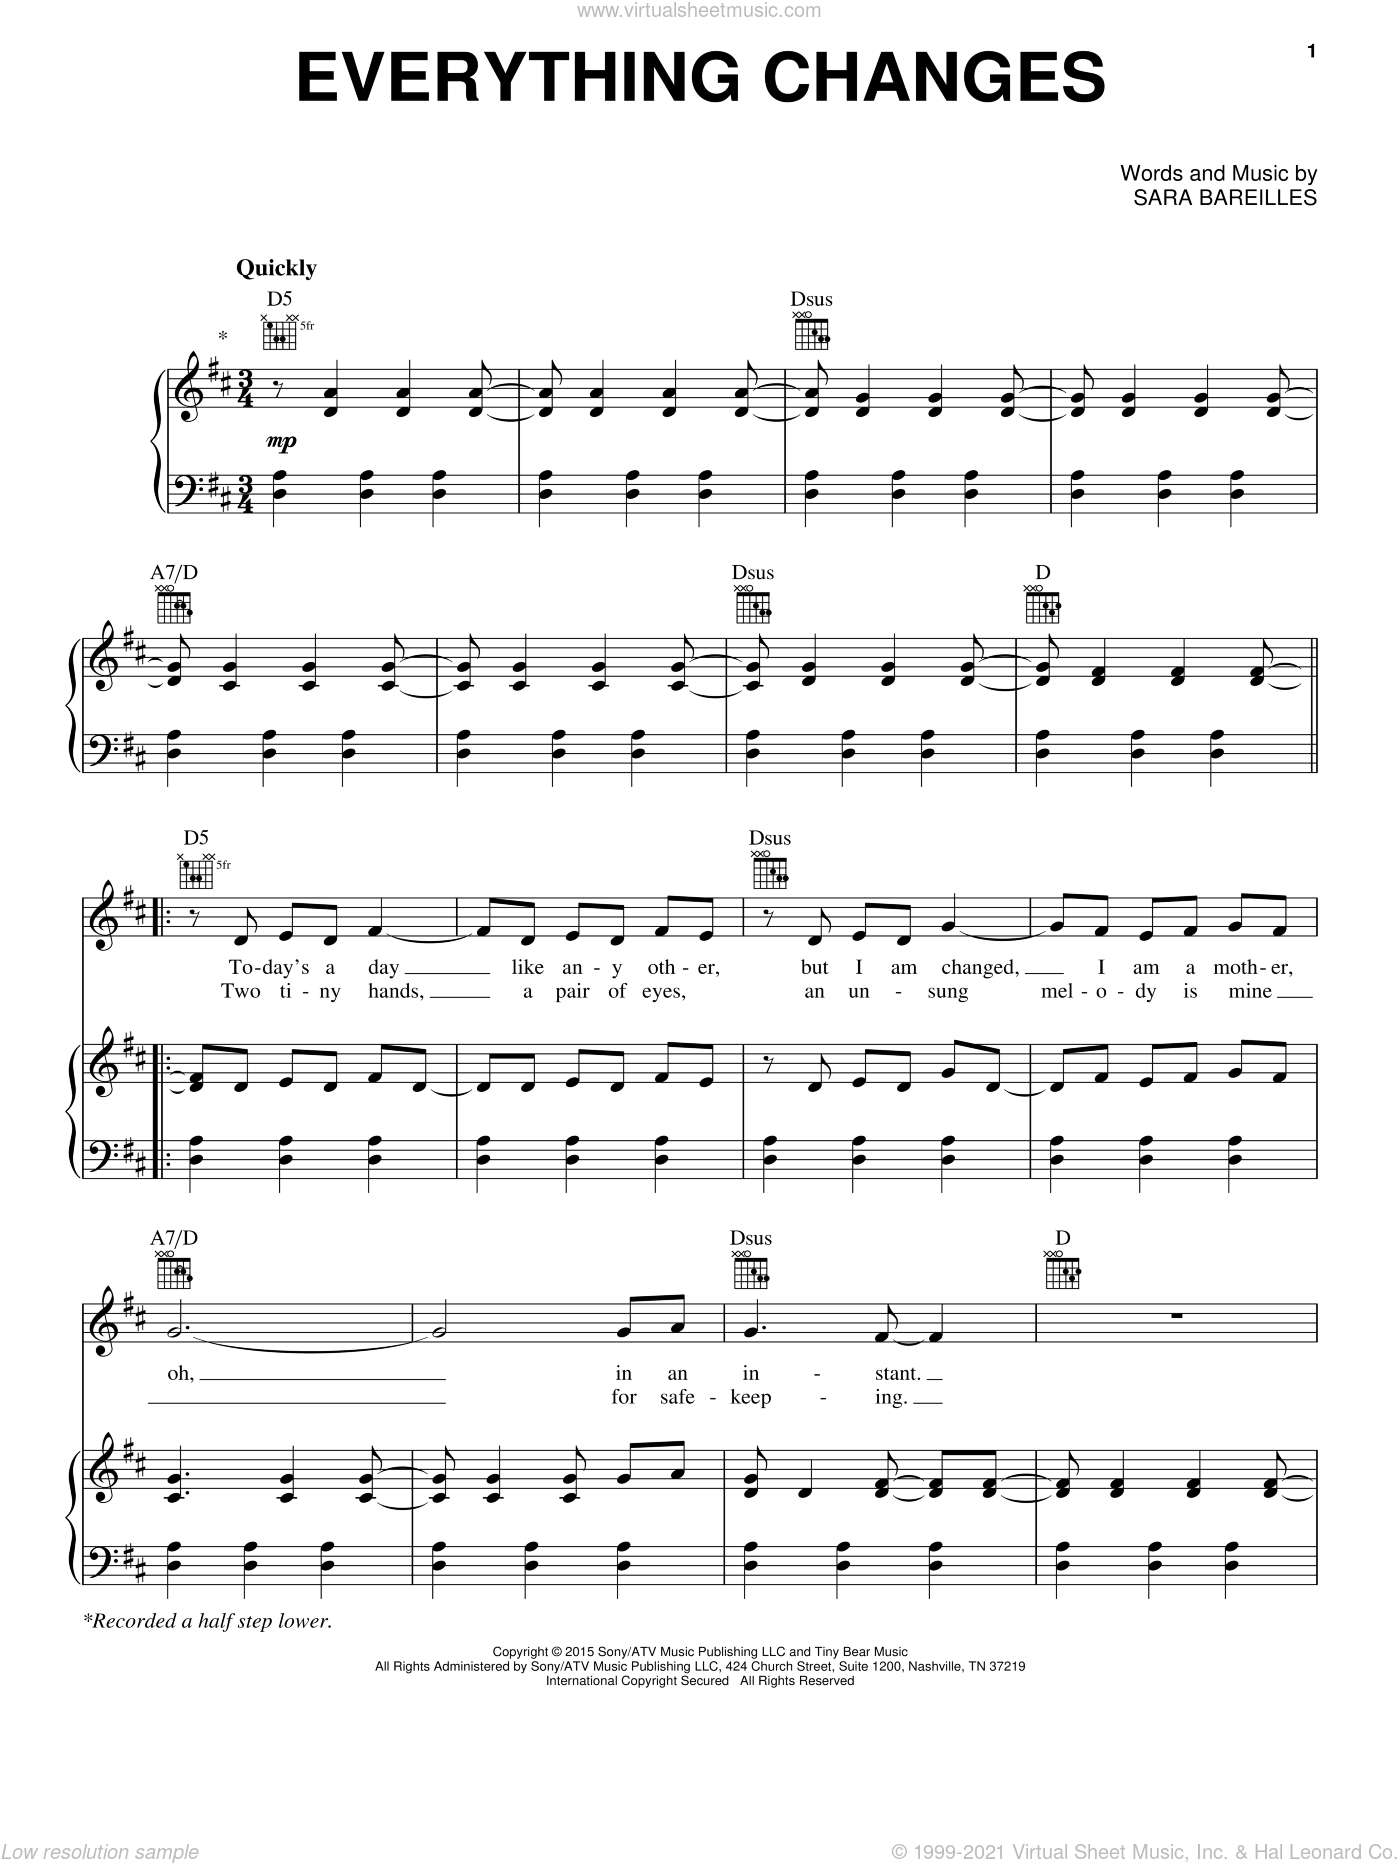 Everything Changes (from Waitress The Musical) sheet music for voice, piano or guitar by Sara Bareilles, intermediate skill level